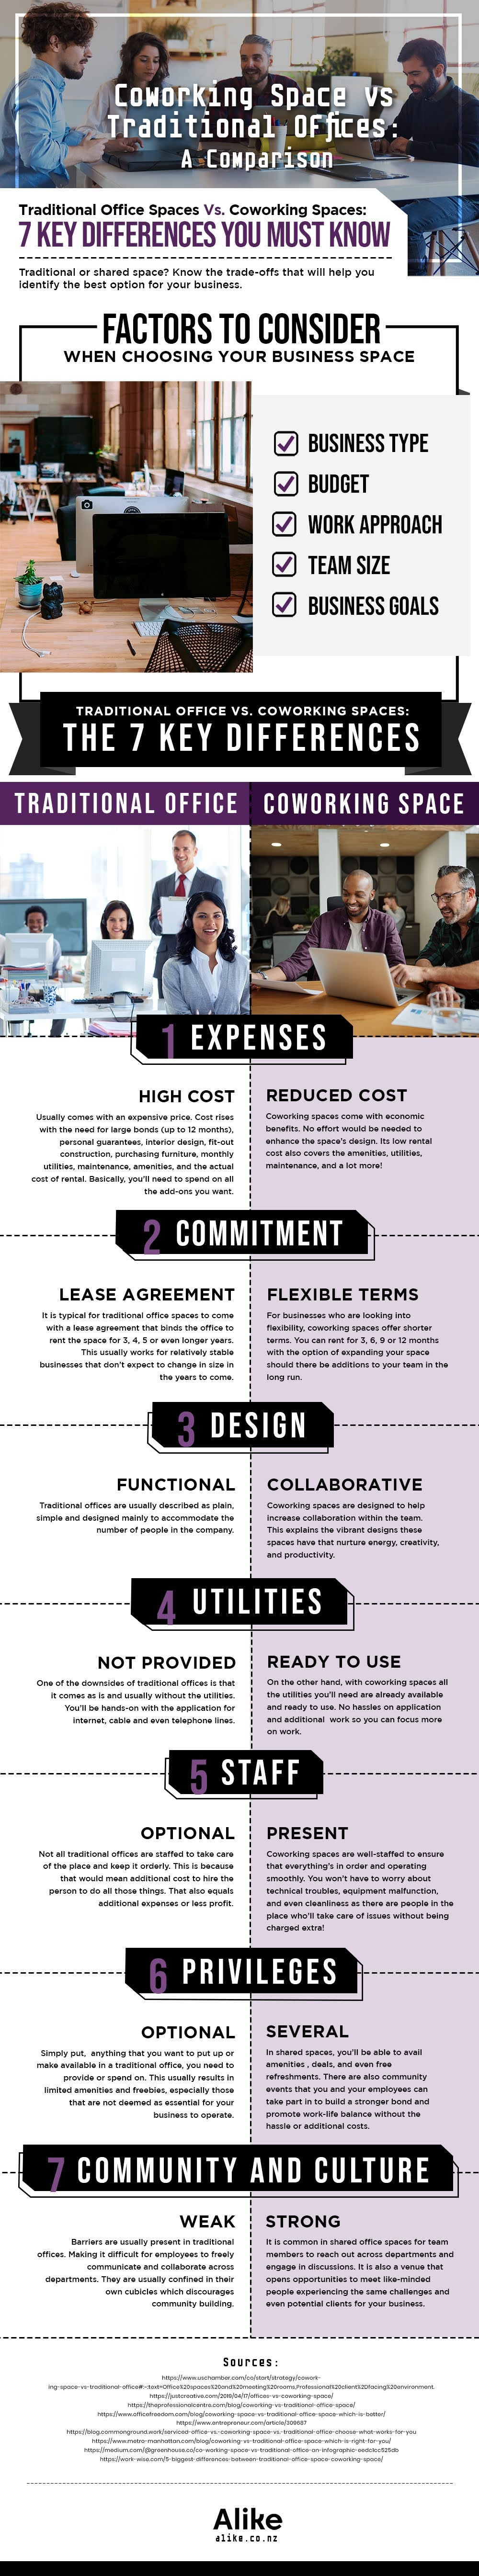 coworking-space-vs-traditional-offices-a-comparison-infographic